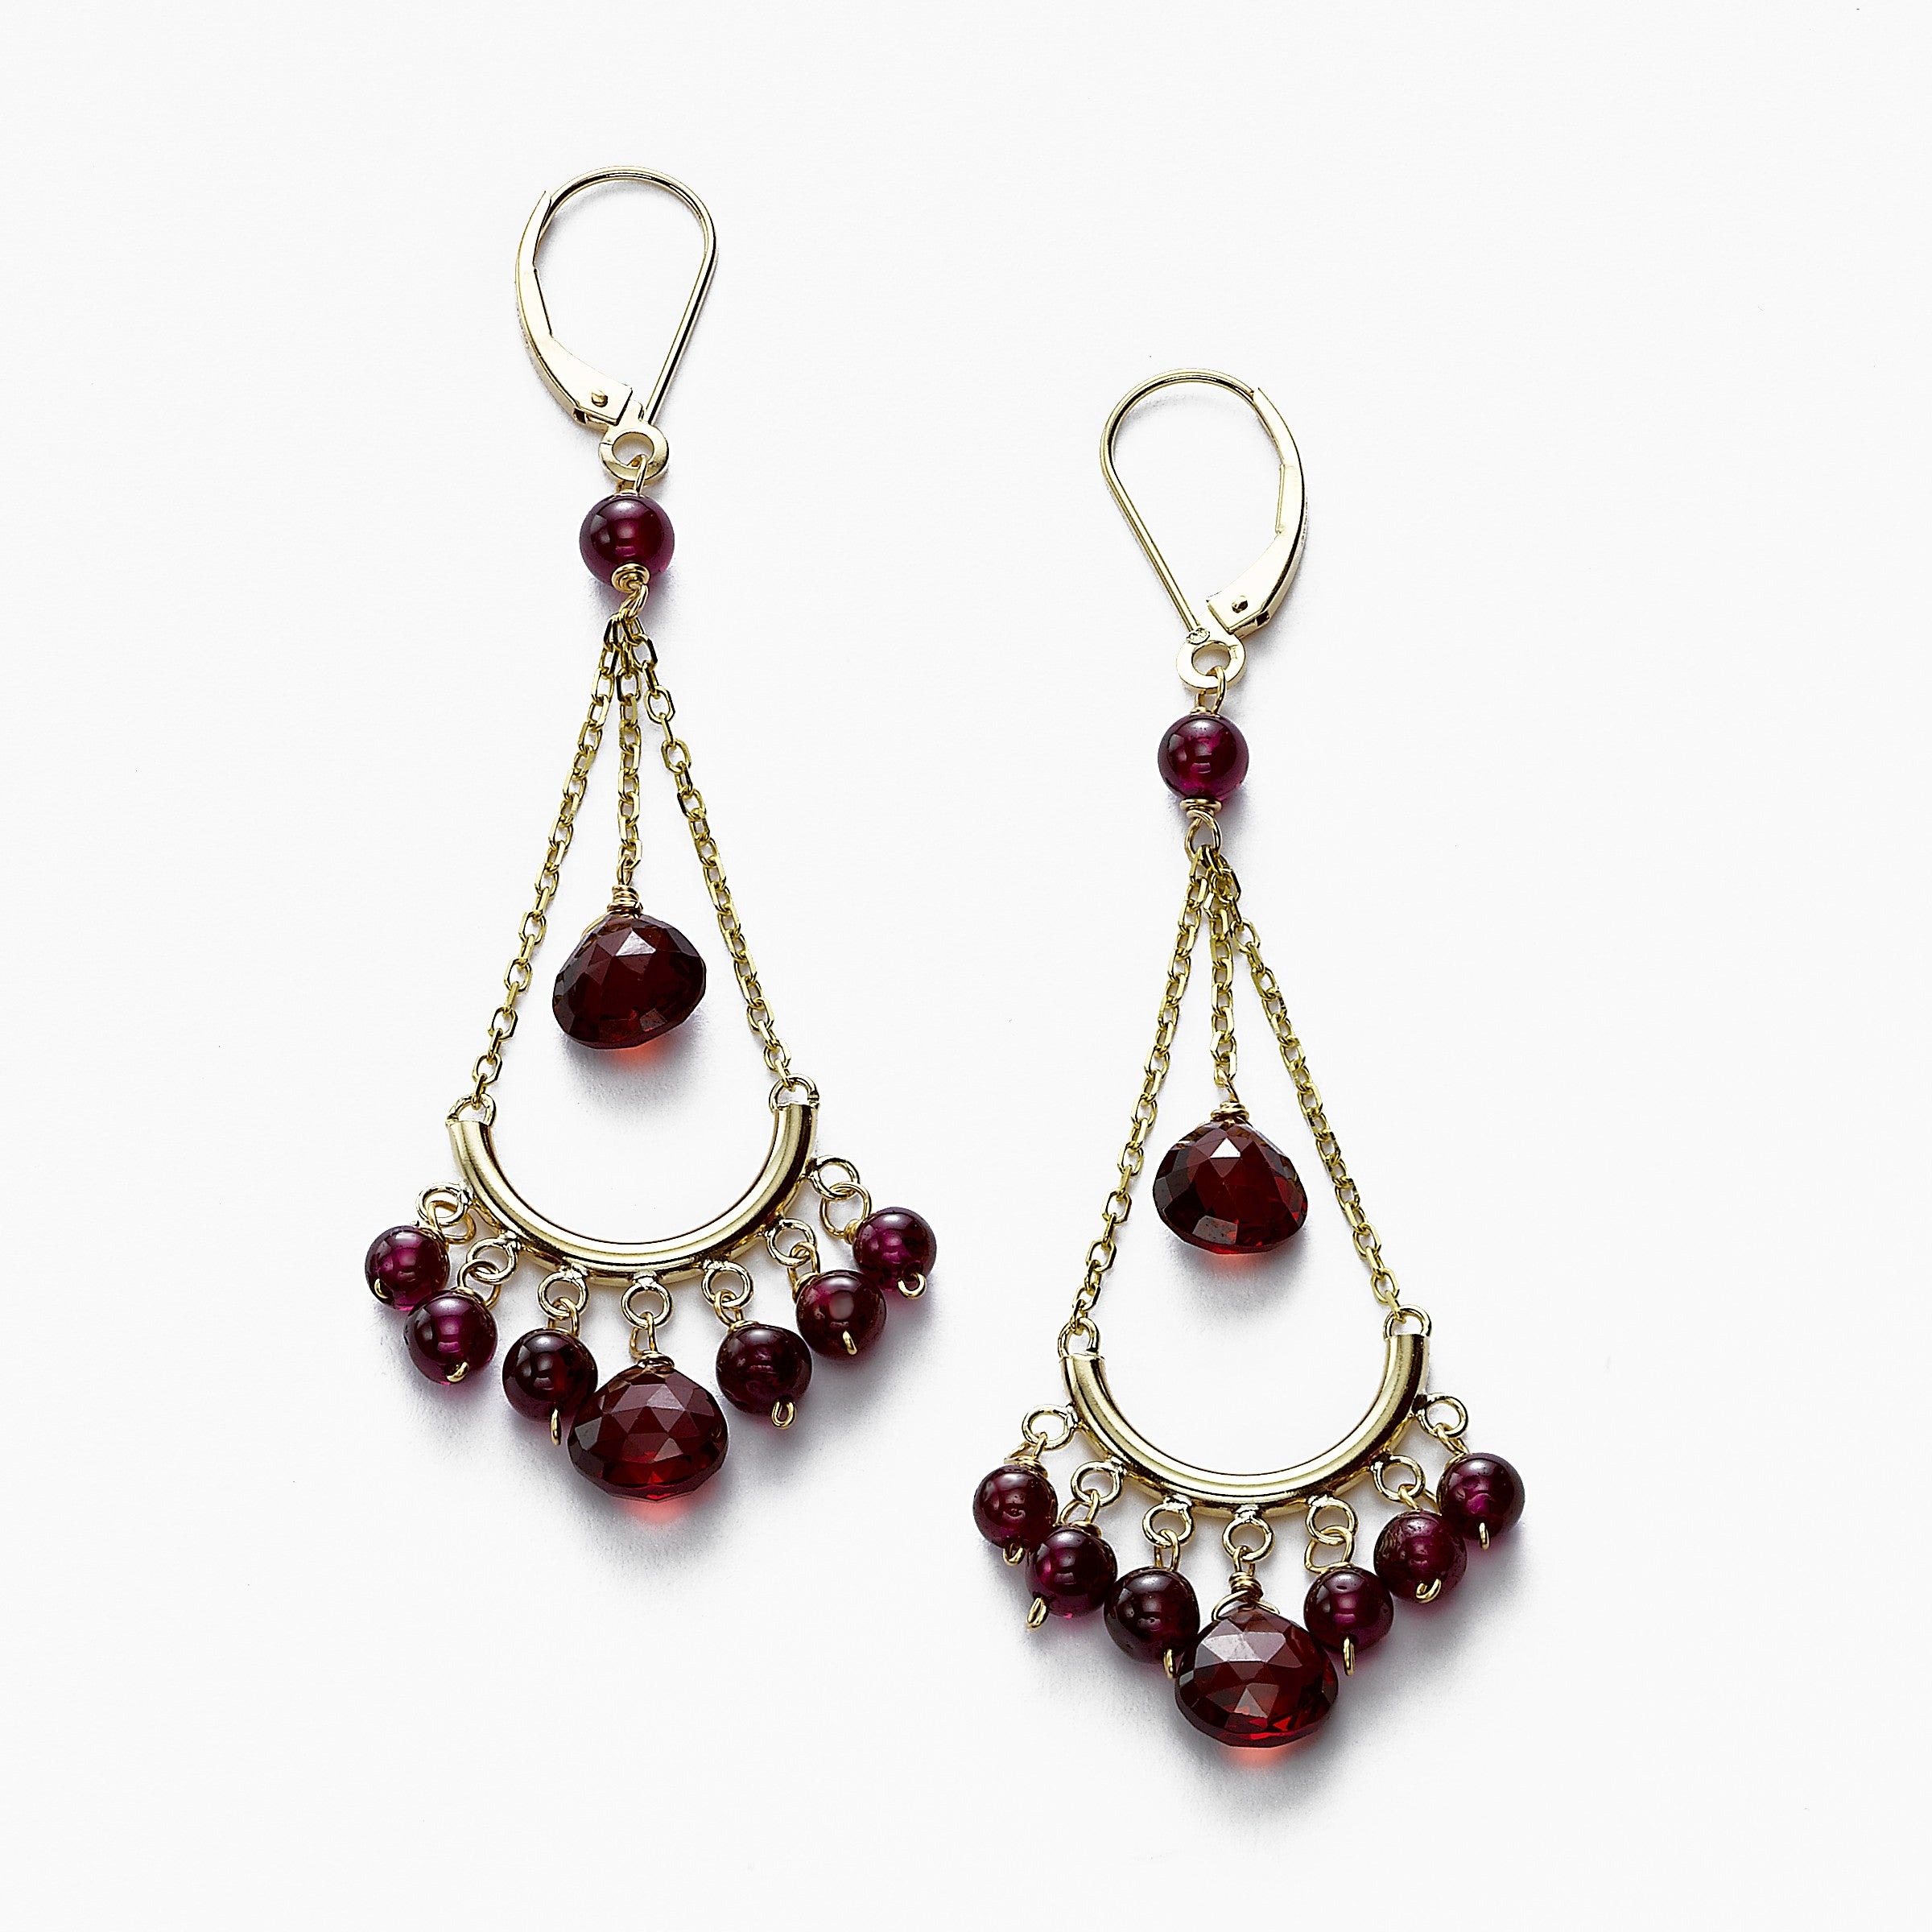 Garnet Chandelier Earrings, 14K Yellow Gold